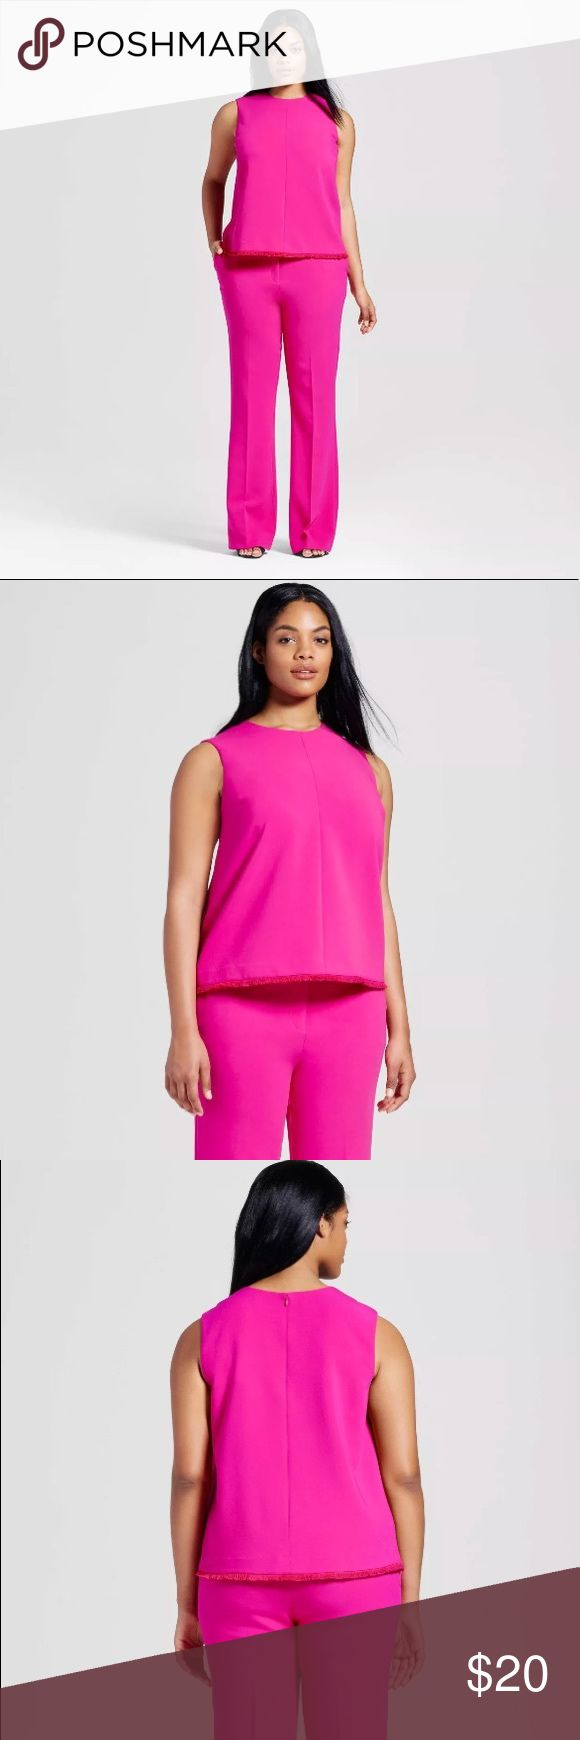 Victoria Beckham Target Fuschia Twill Plus Top This is a Victoria Beckham for target fuchsia twill tank top. new with tags: this item has original tags and shows no visible signs of wear. it's a must have wardrobe staple for any fashion forward closet. this women's fuchsia  twill tank top by Victoria Beckham for target will get you from the office to a night out without missing a beat. from a pet free smoke free home. thank you for looking , enjoy your purchase! Victoria Beckham for Target…